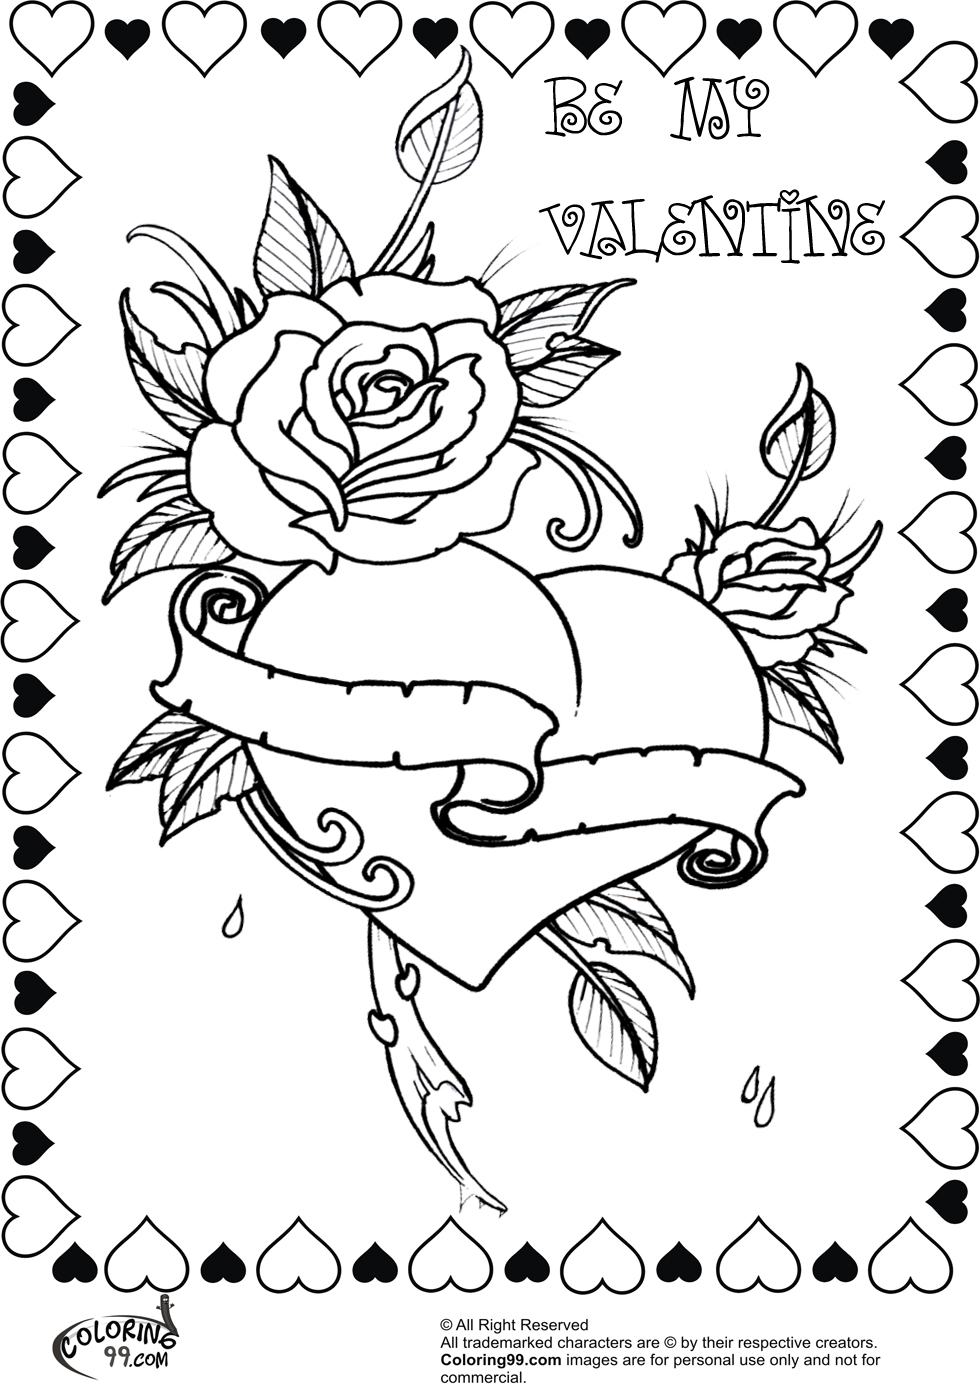 Roses And Hearts Coloring Pages 23 Coloring Pages Of Roses And Hearts Printable Free Coloring